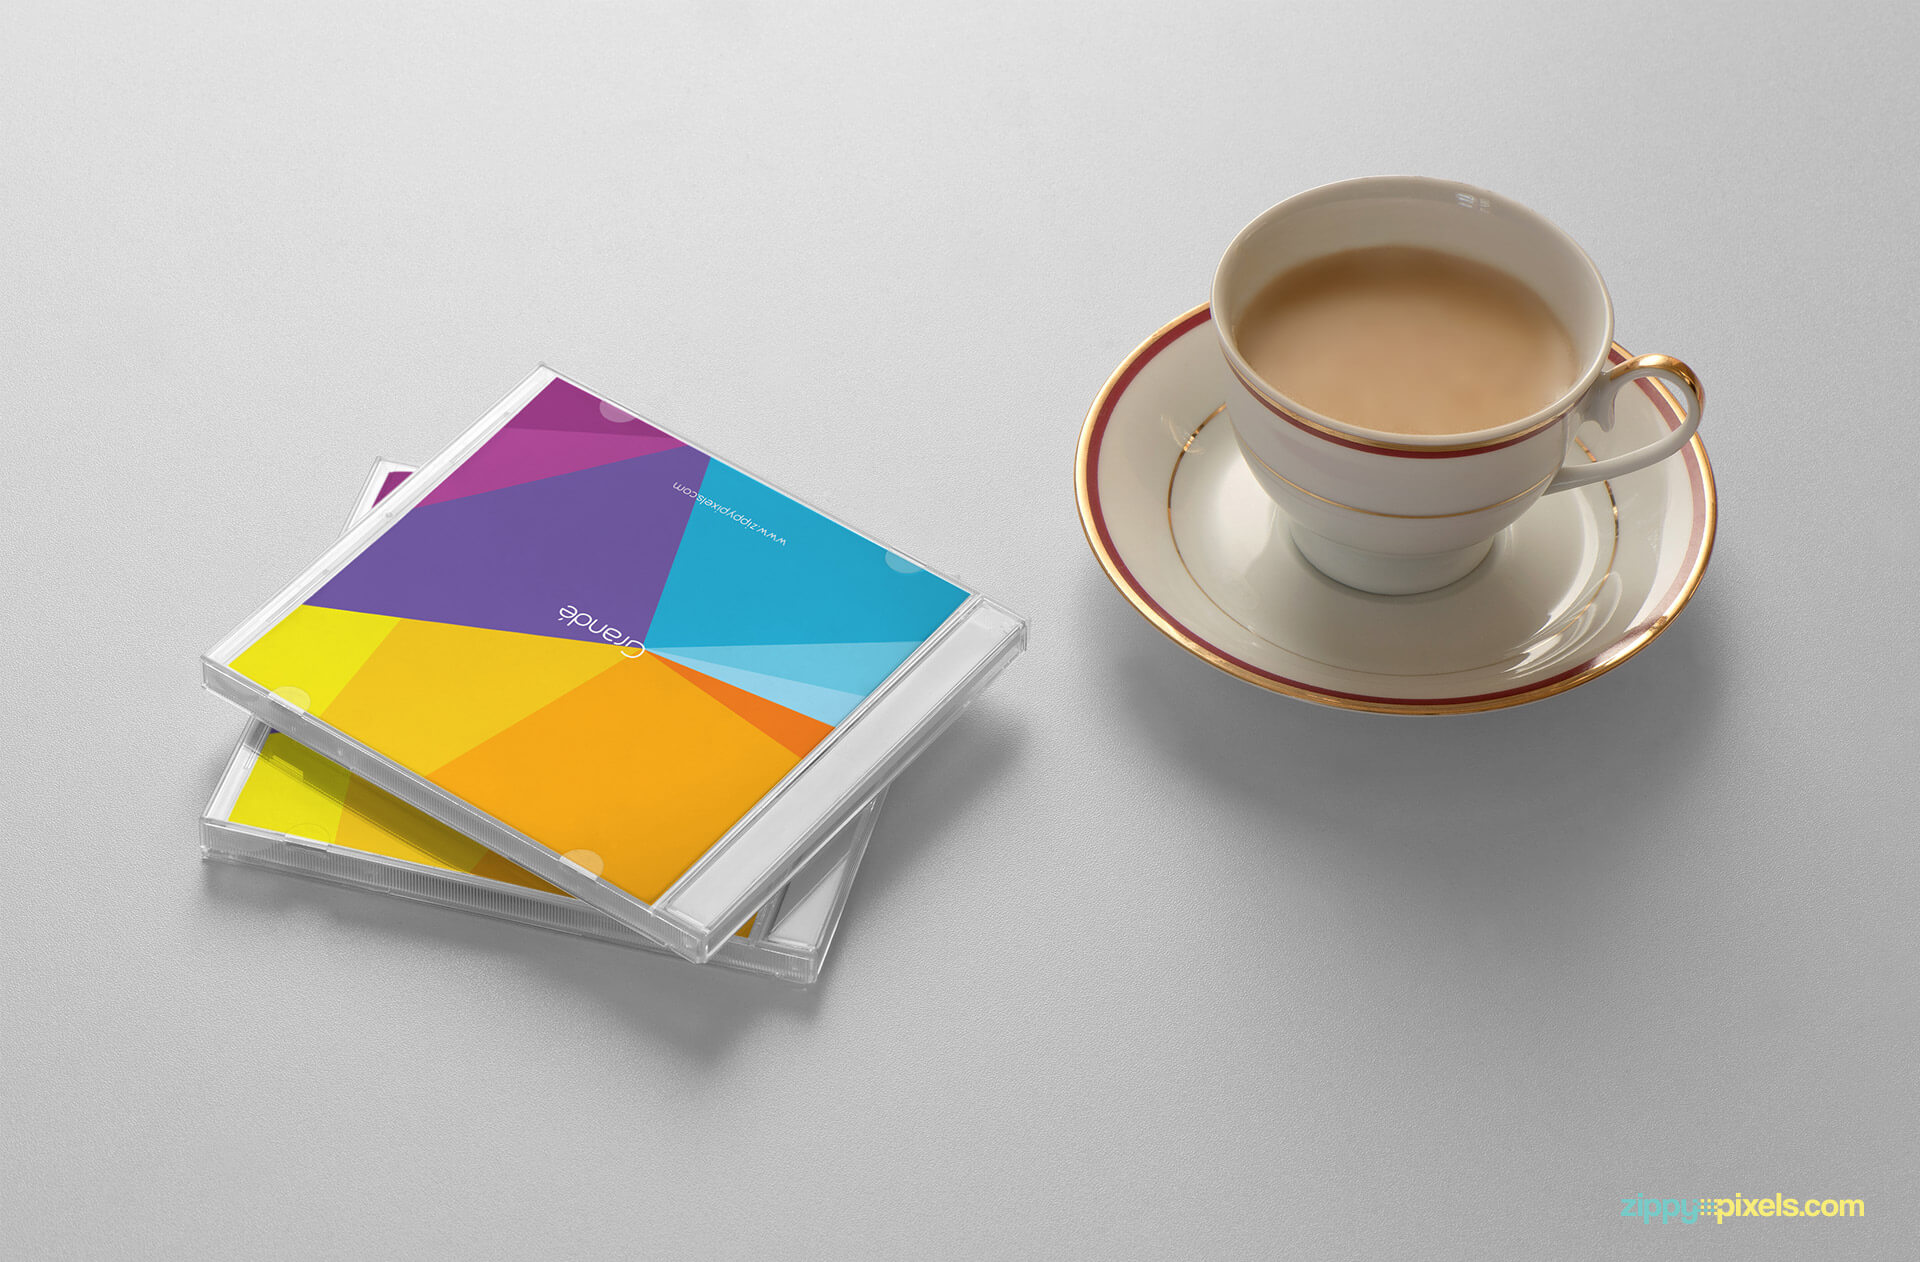 Branding Mockup of CD Covers with Tea Cup